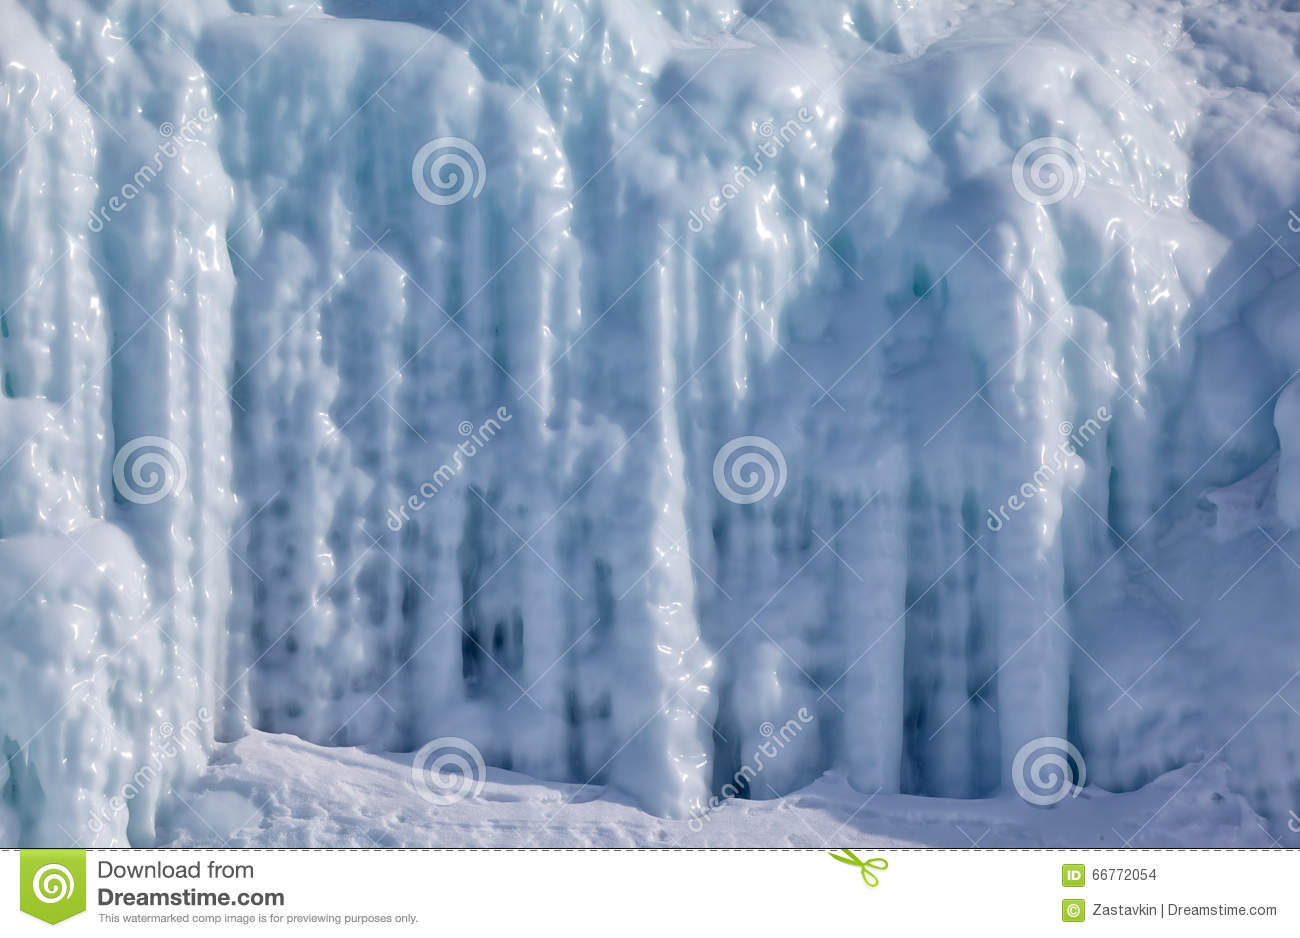 Icicles on the ice wall